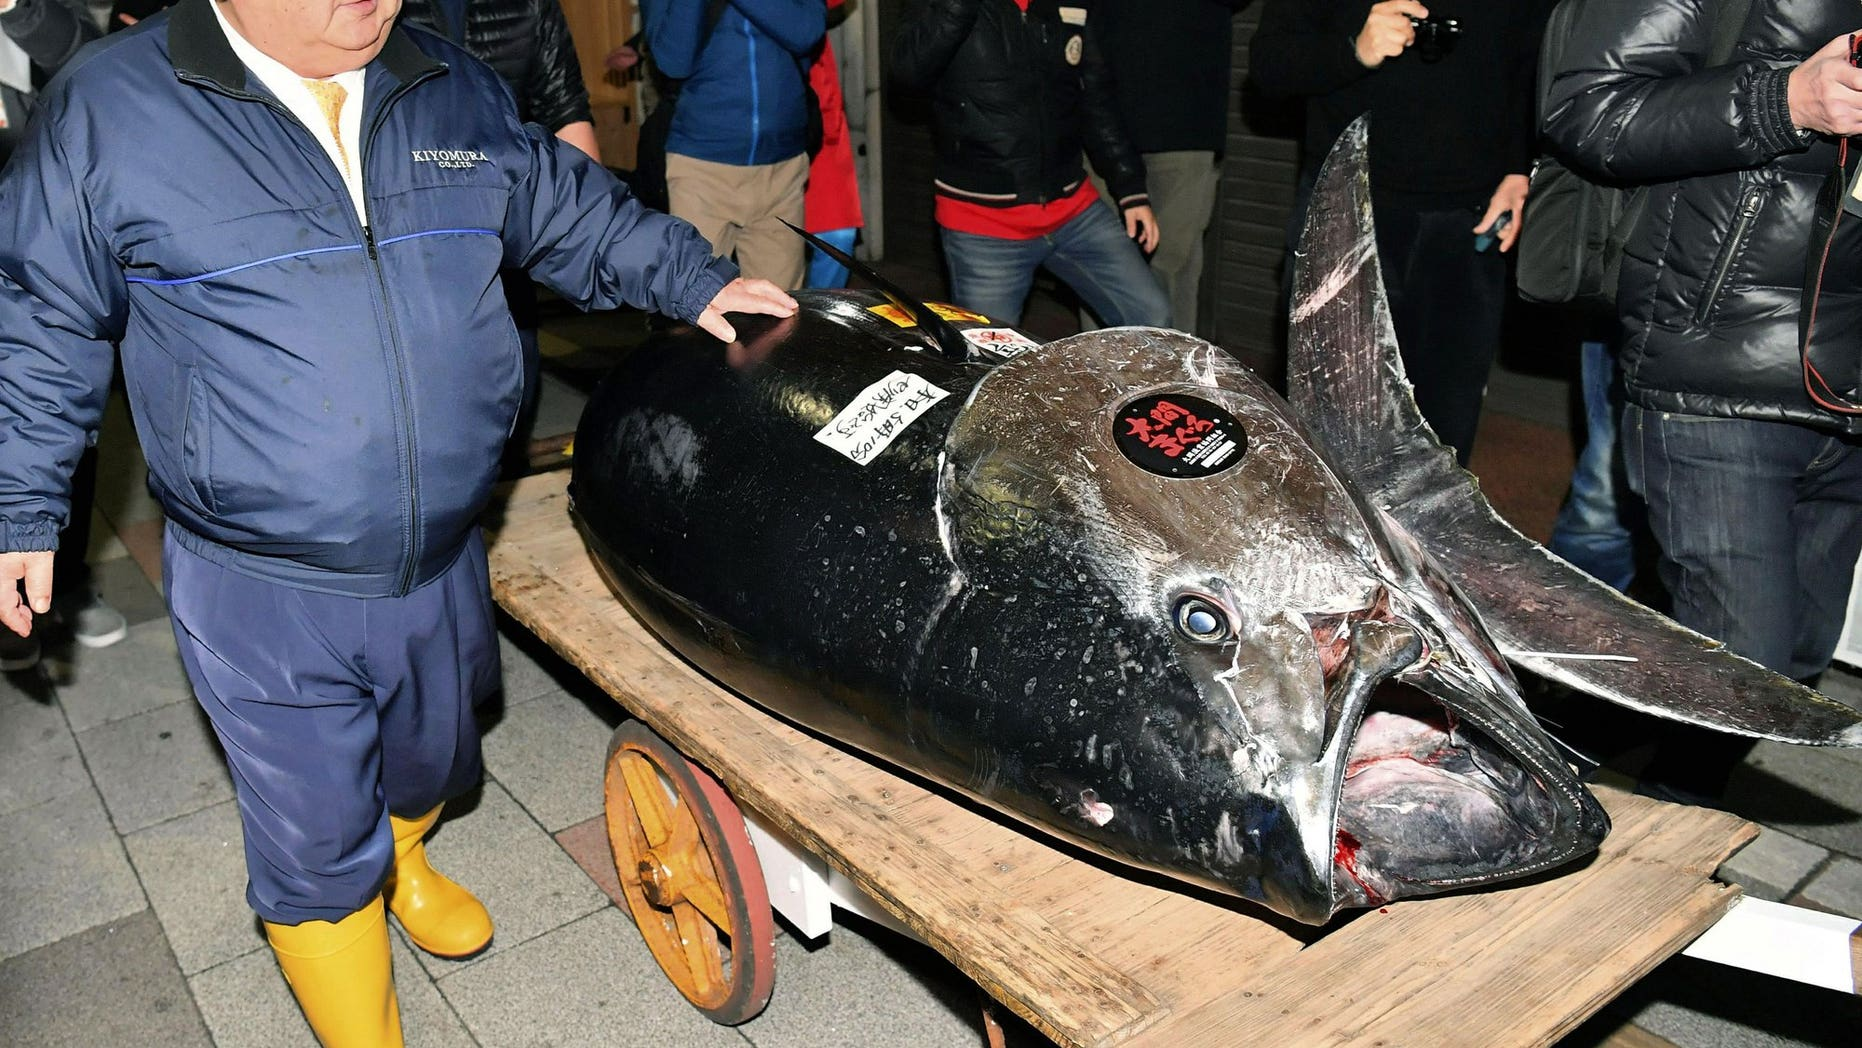 Japanese bluefin tuna sold at auction for record $4.4m